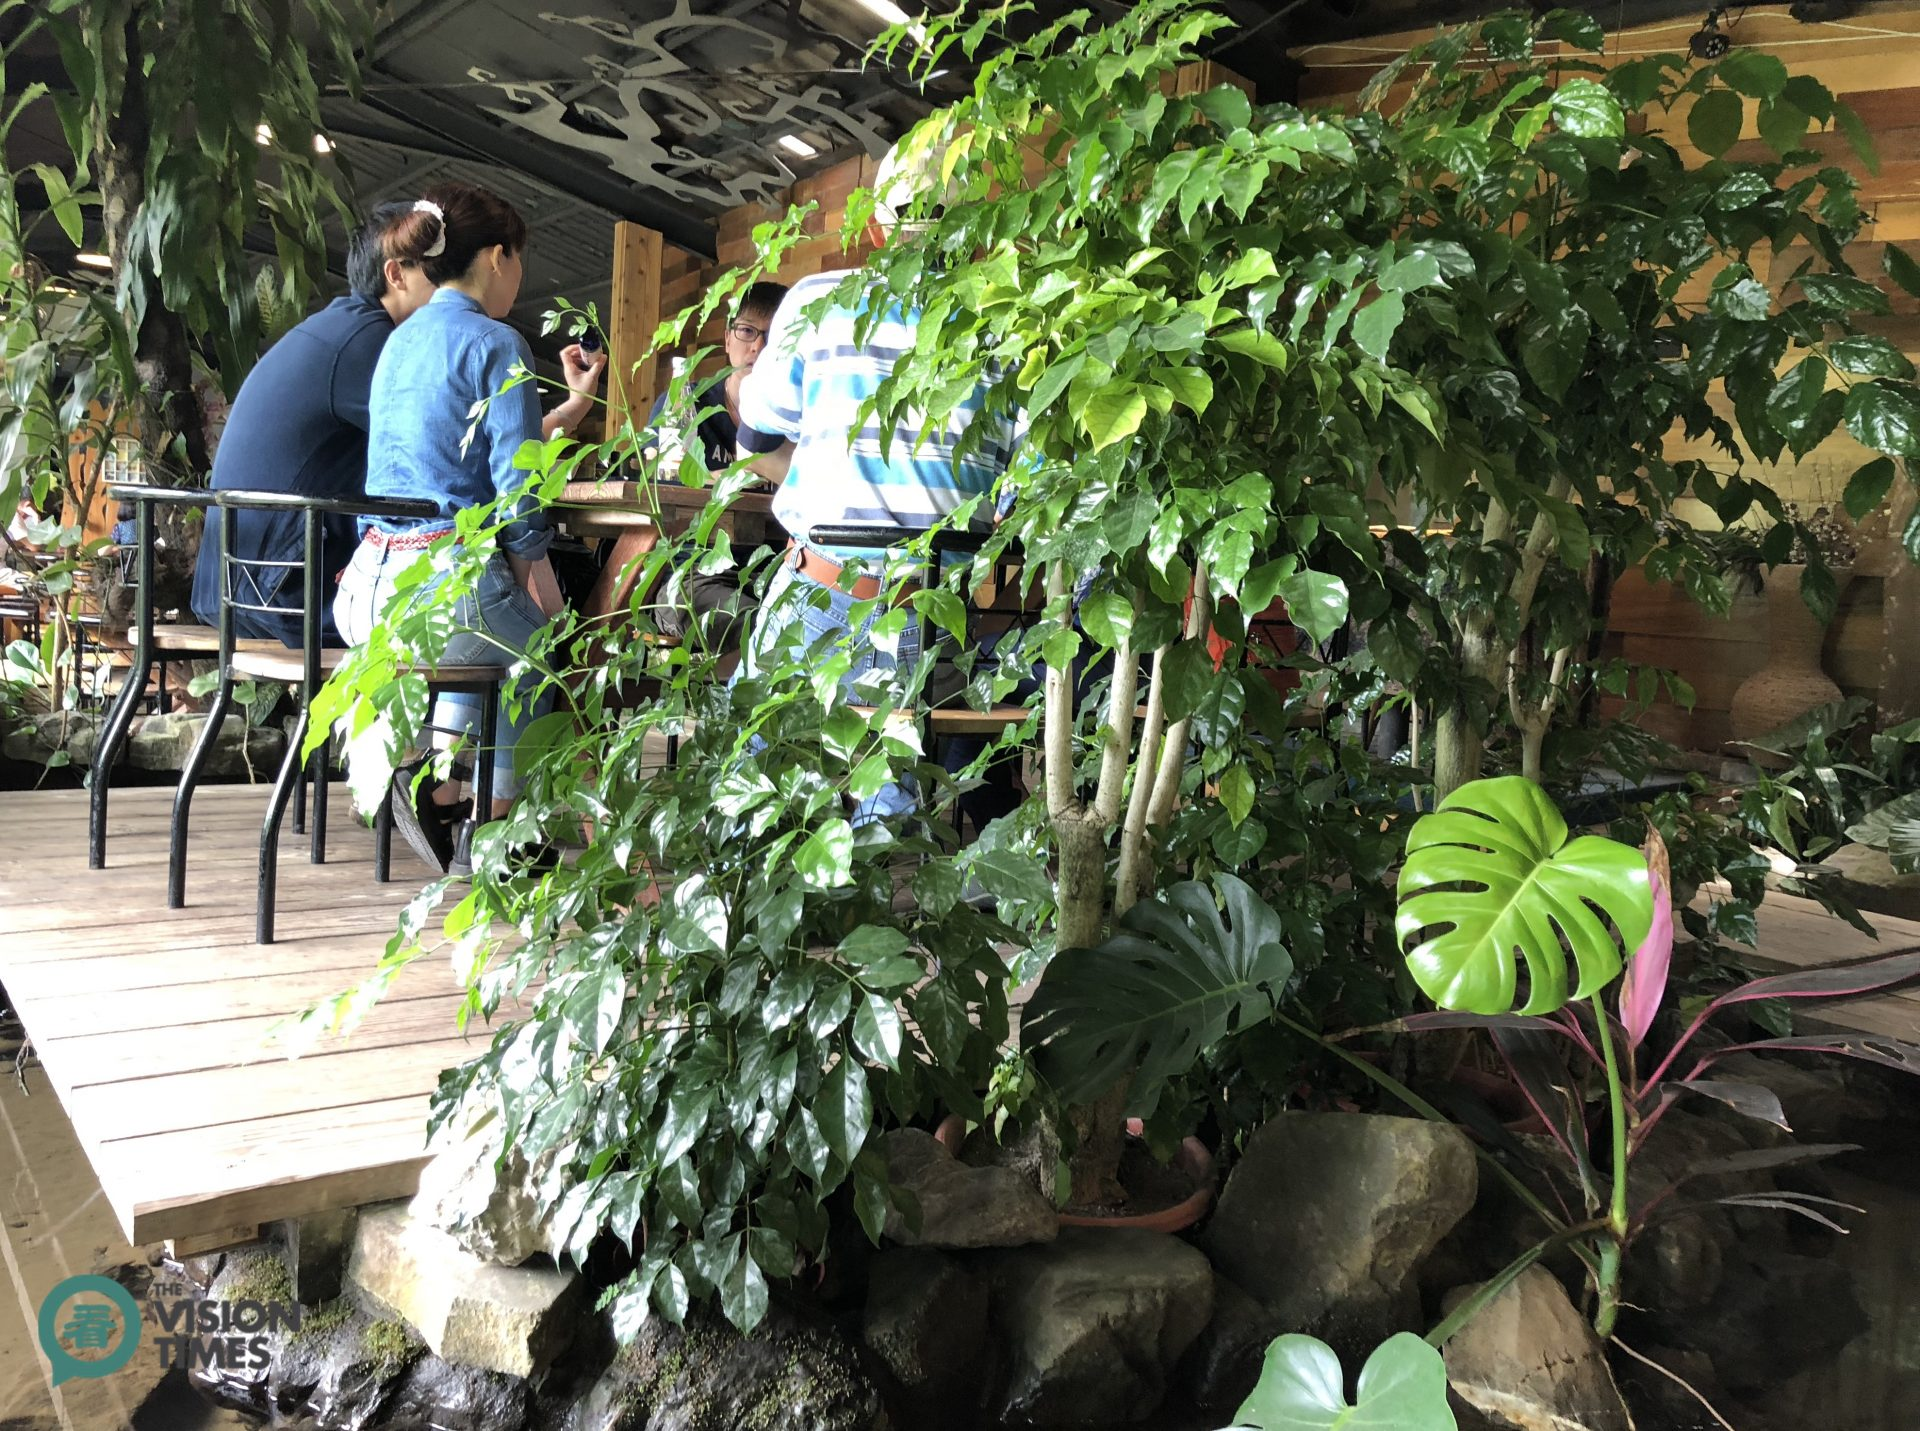 Visitors can dine around a wooden table next to green plants on elevated solid wood floor made of planks. (Image: Billy Shyu / Vision Times)